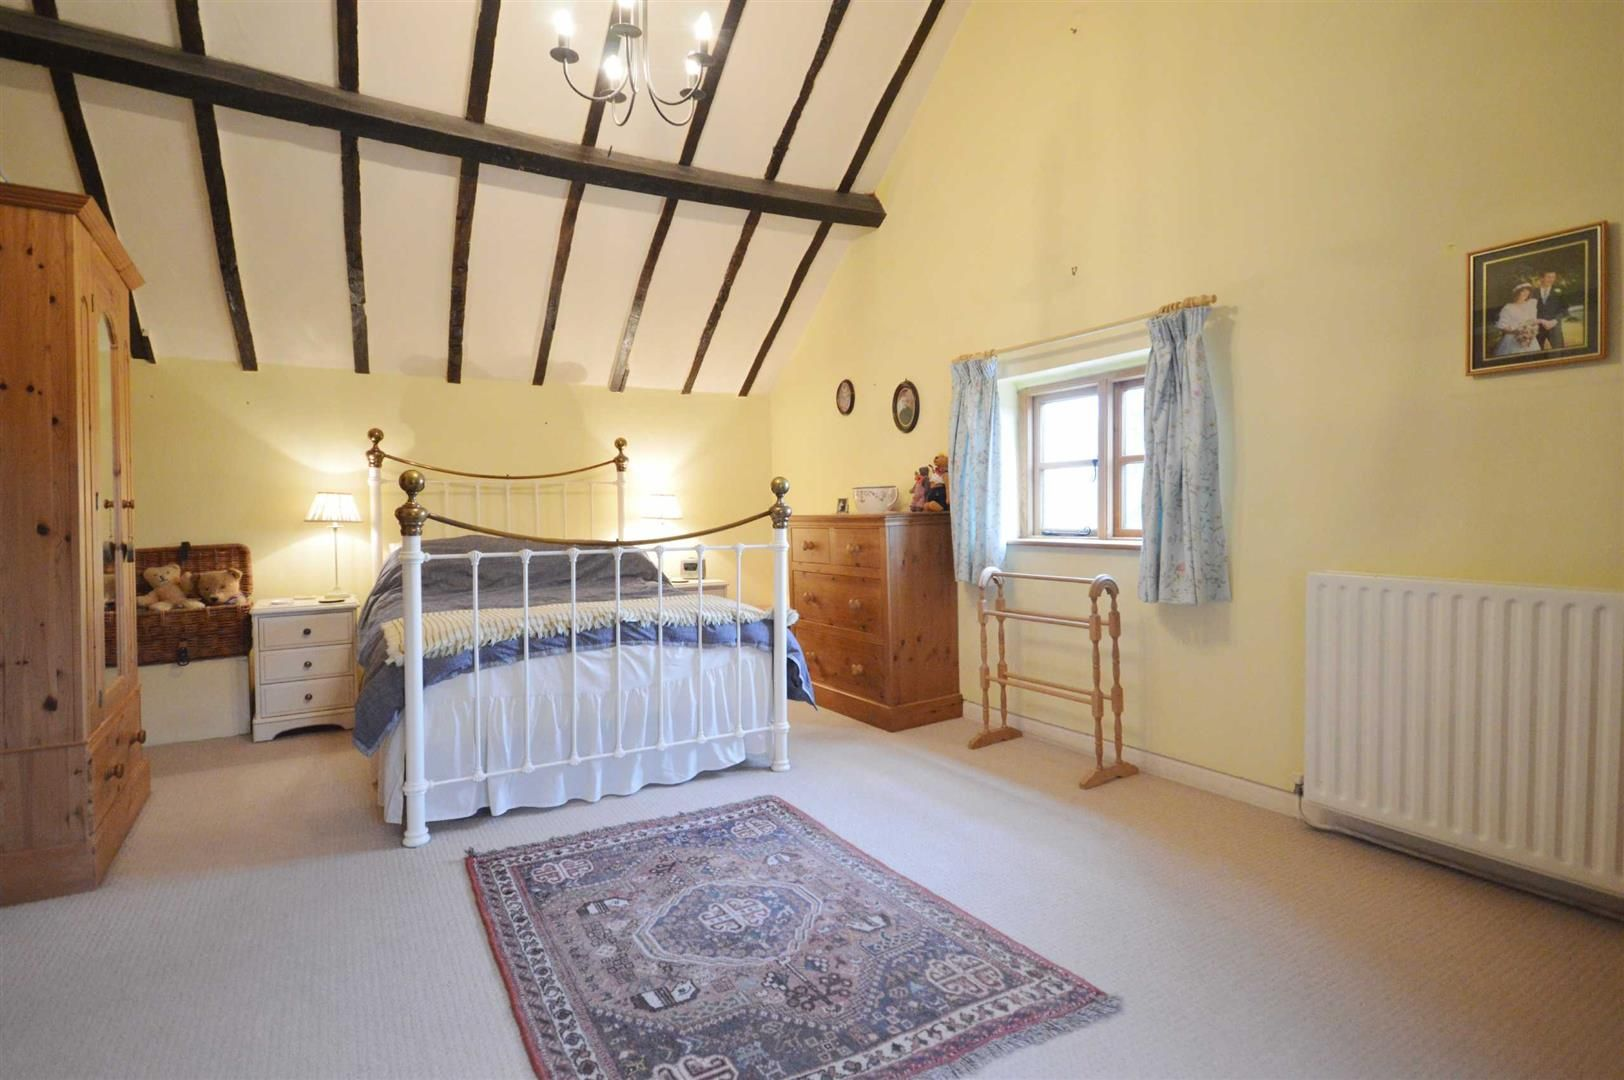 5 bed detached for sale in Marston  - Property Image 10